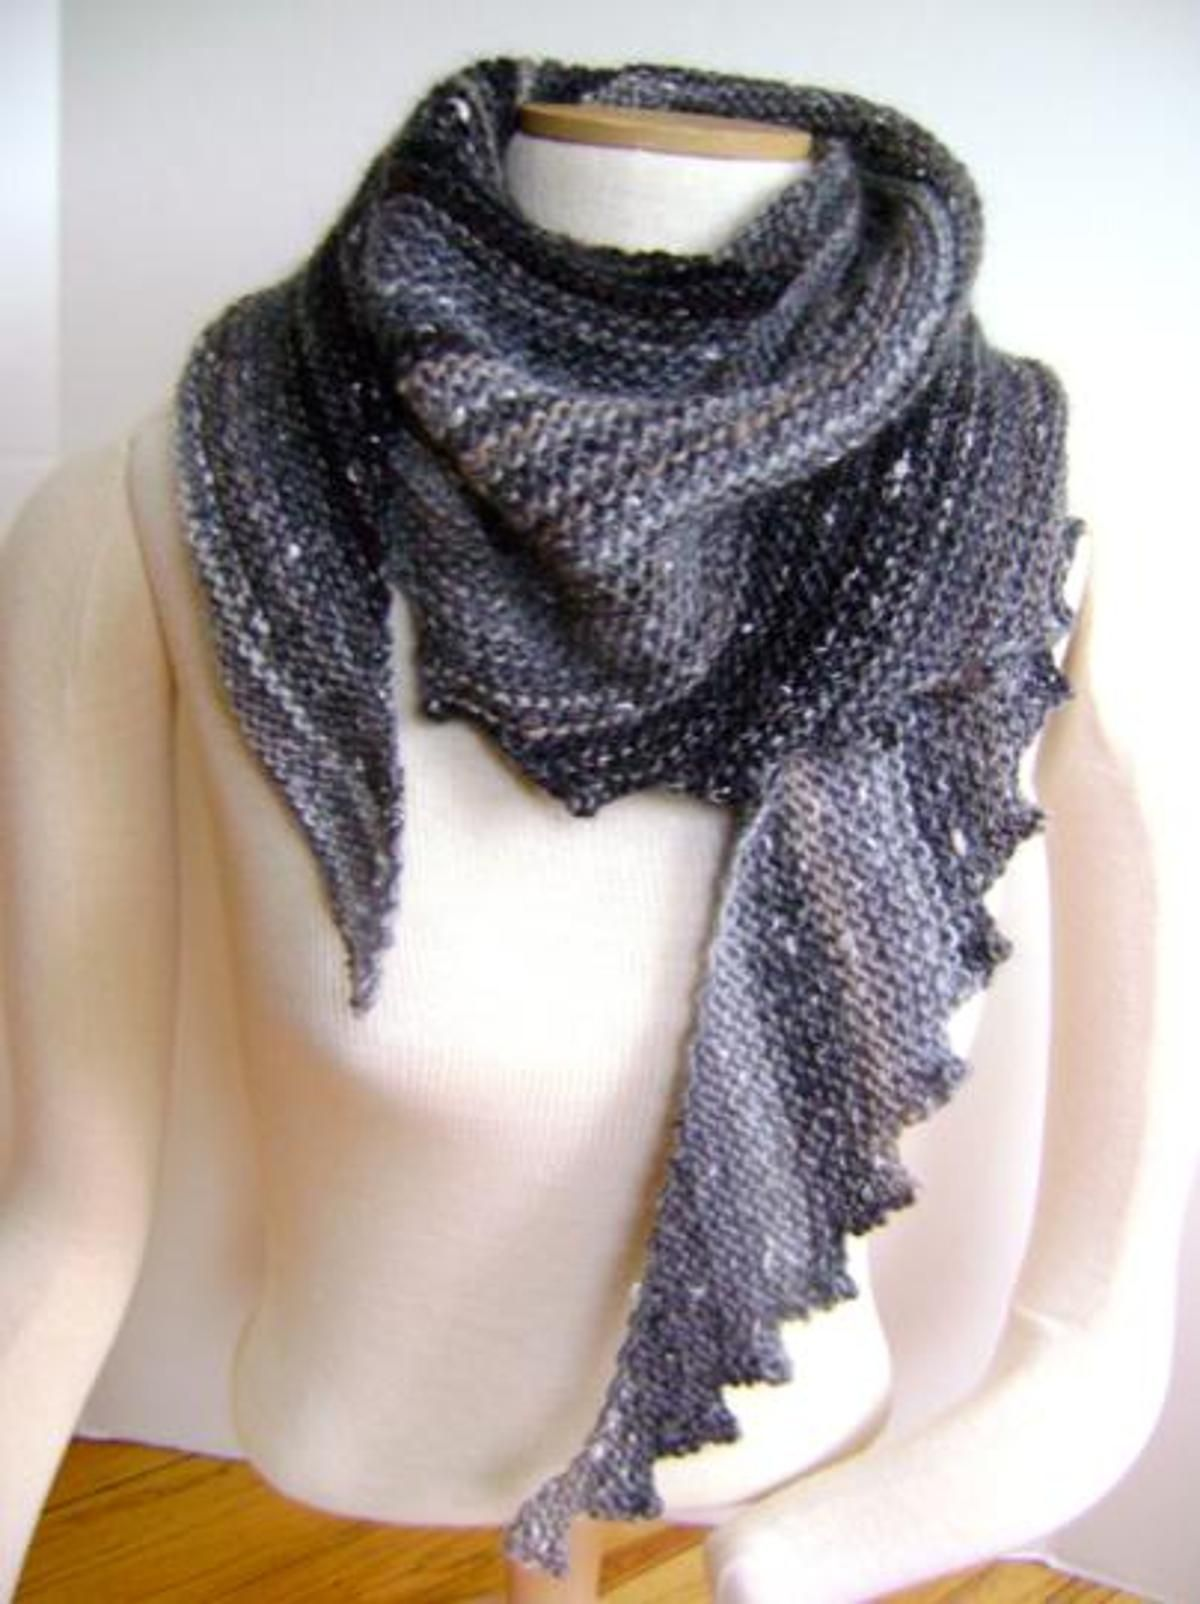 hitchhiker scarf pattern free - Google Search | scarves | Pinterest ...